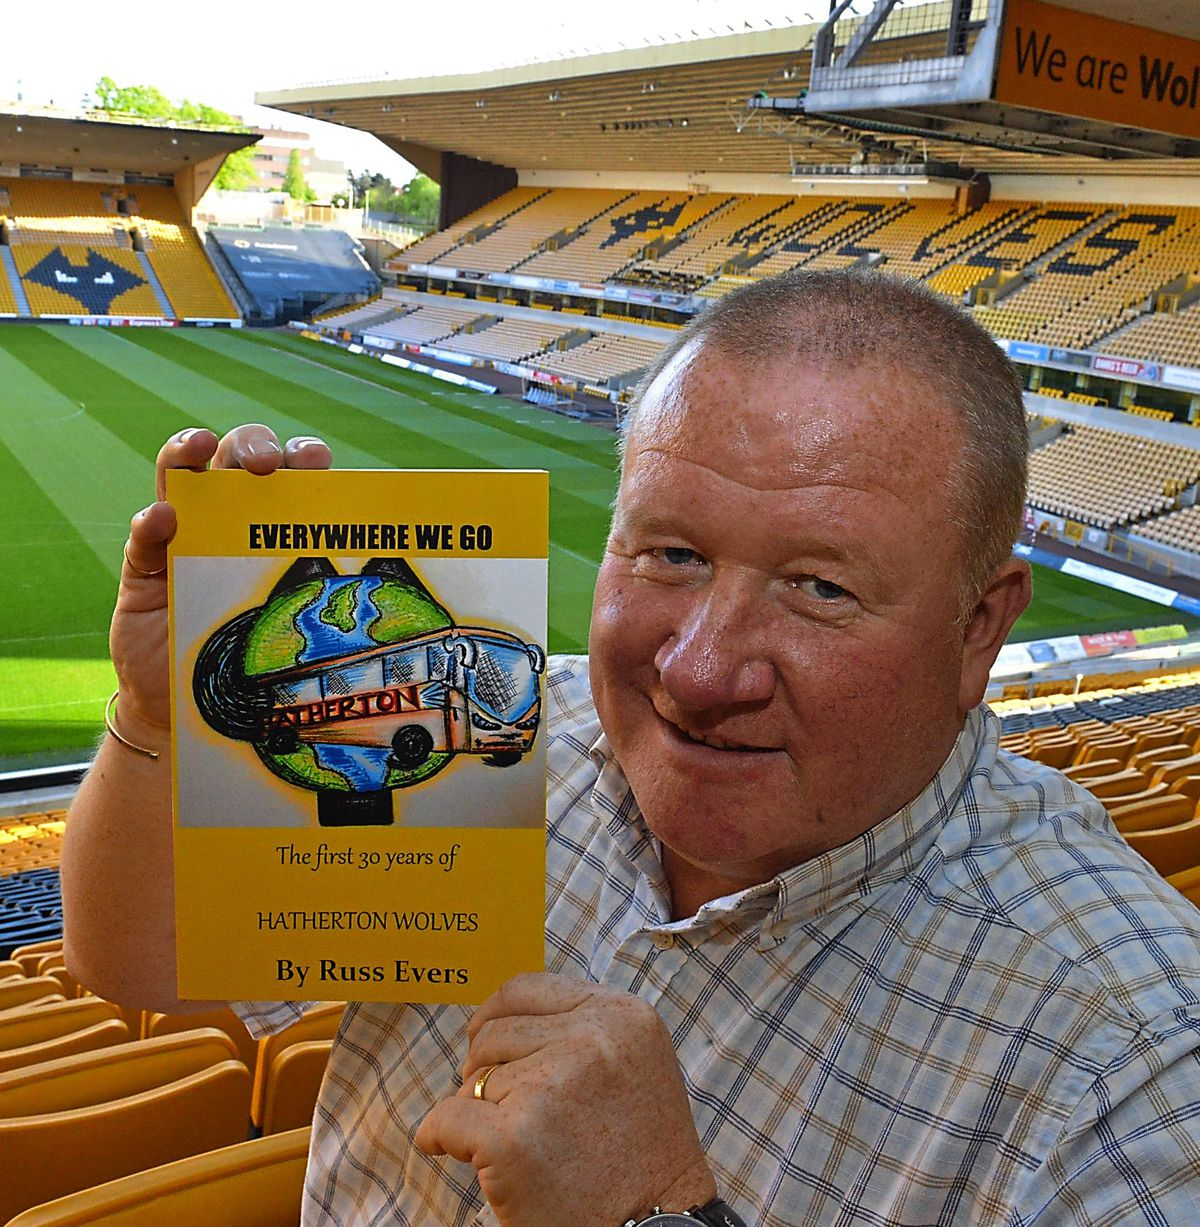 A total of 306 books – one for every goal scored by Wolves legend Steve Bull – have been produced